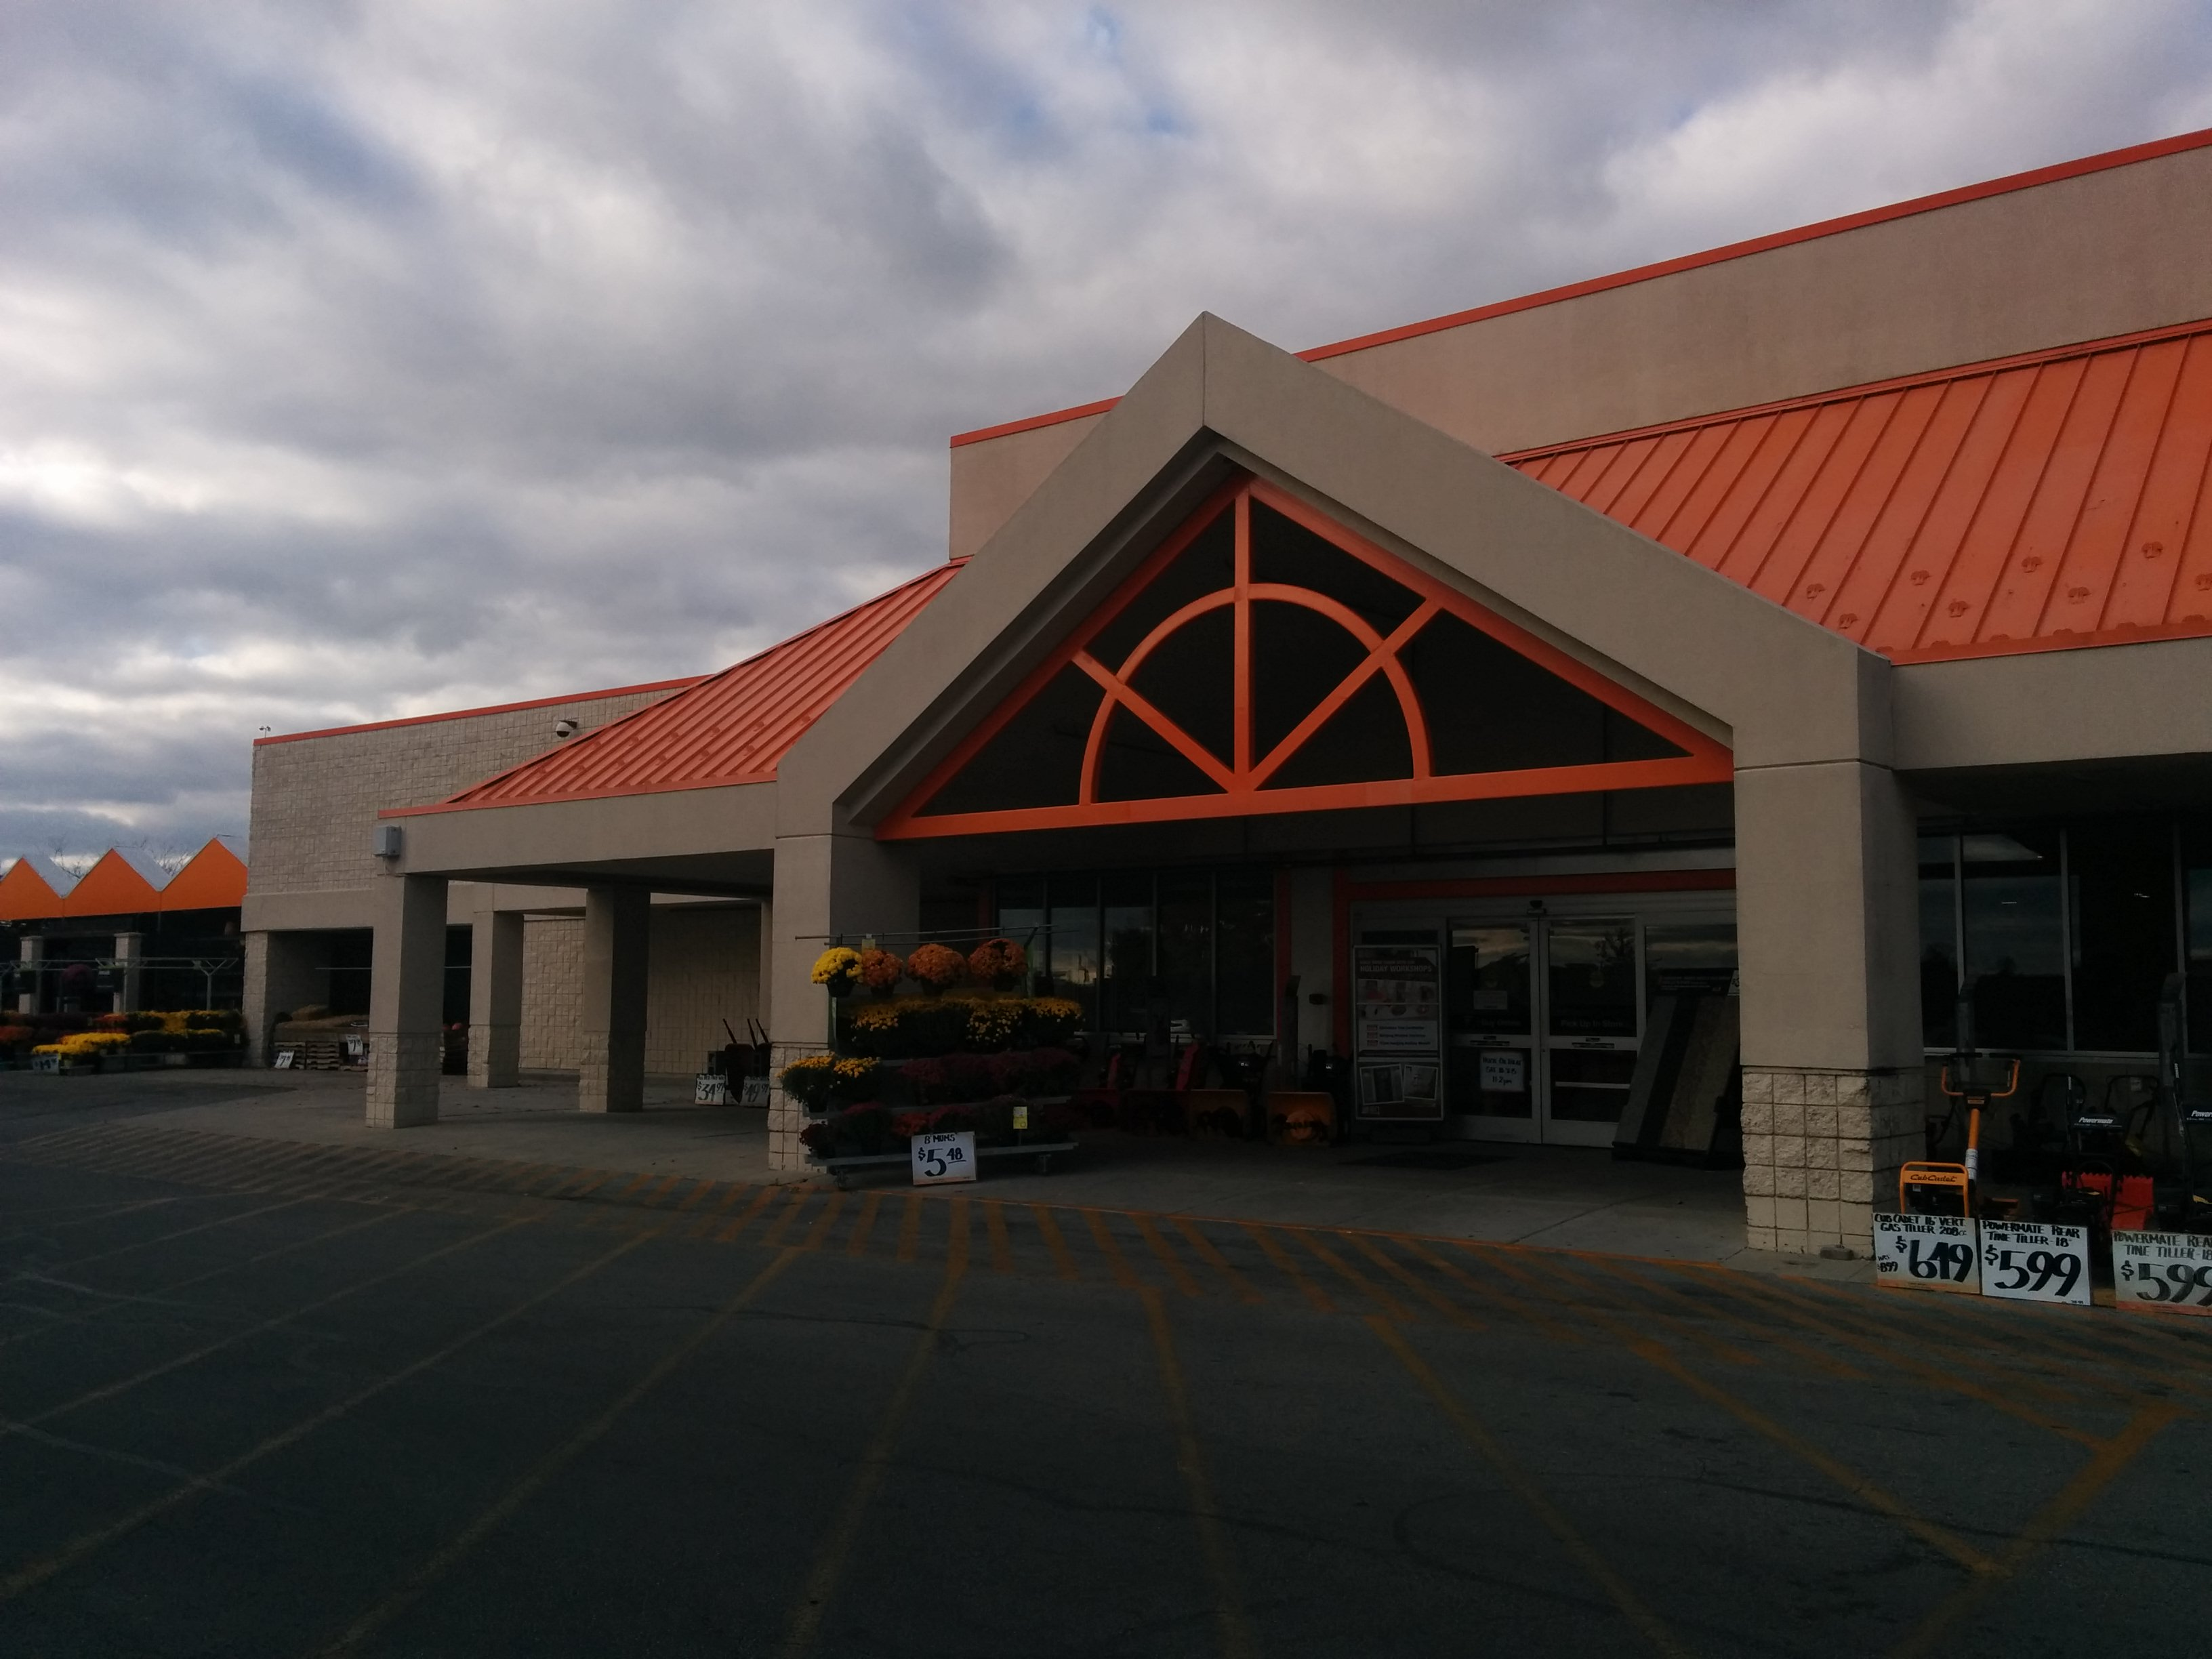 The home depot in hanover pa 17331 for The hanover house